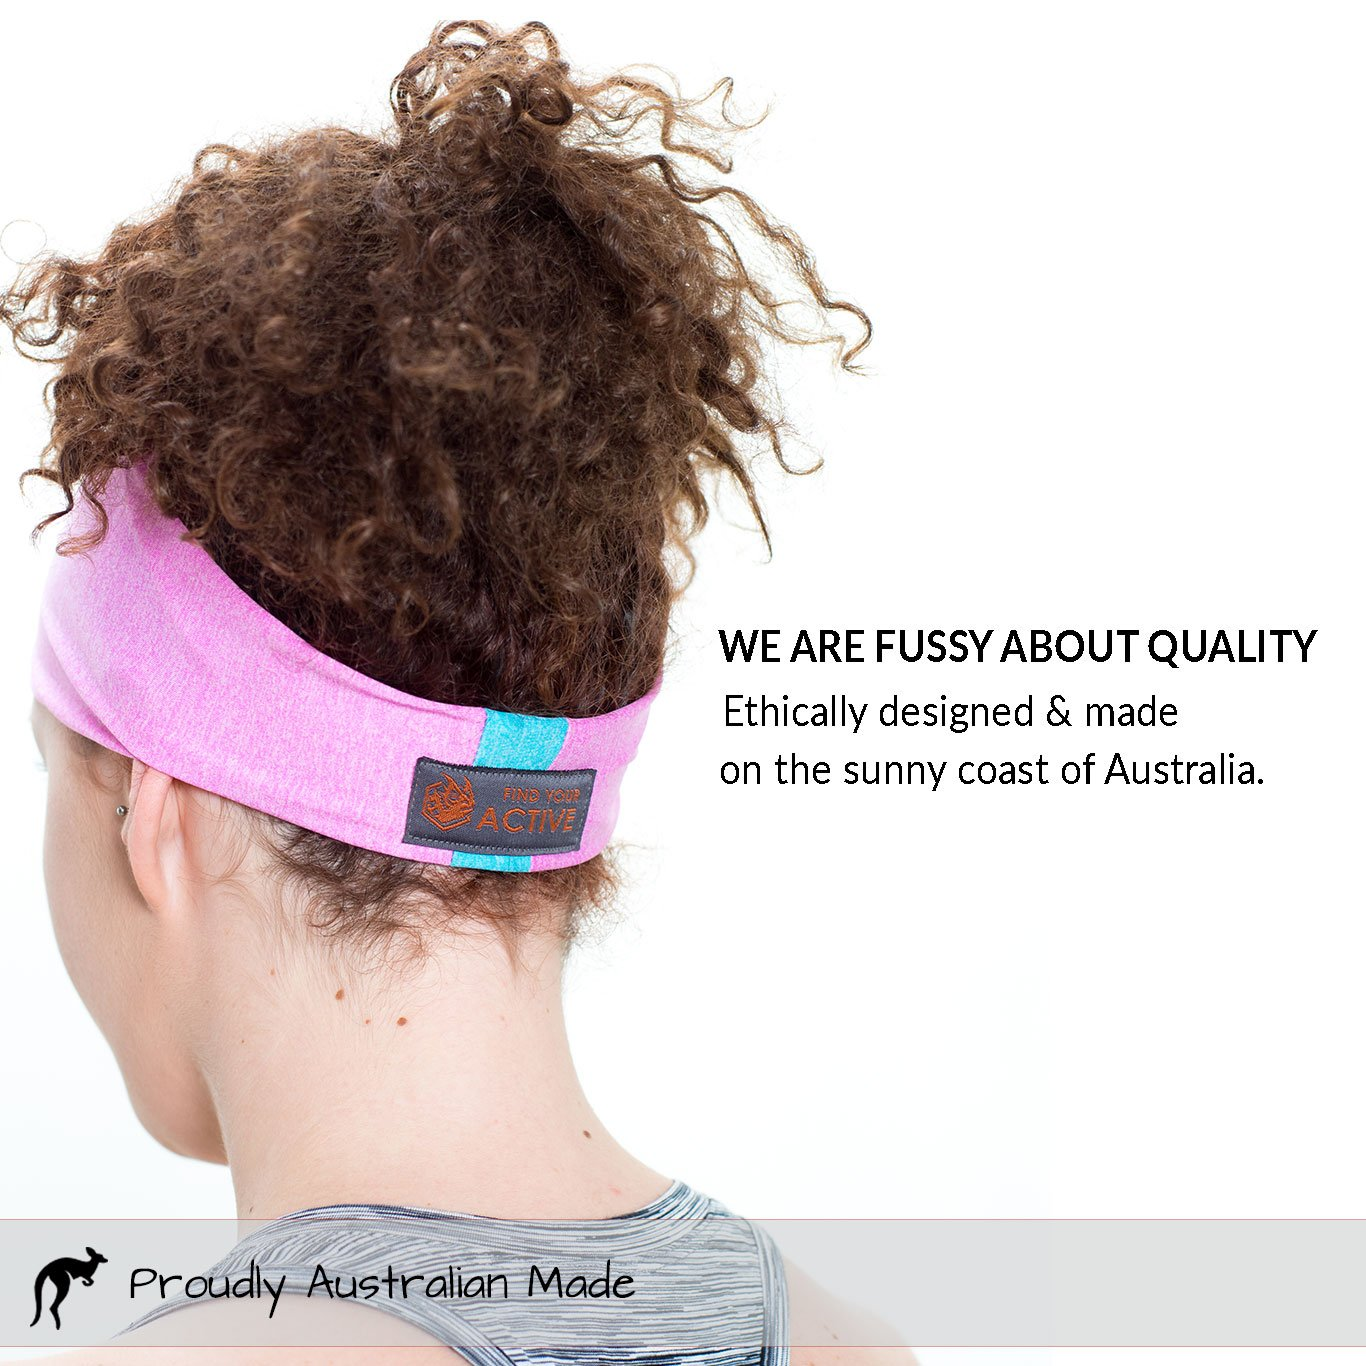 Red Dust Active Lightweight Sports Headband - Moisture Wicking Pink Sweatband - Ideal for Running, Cycling, Hot Yoga and Athletic Workouts - Designed for Women Borrowed by Men by Red Dust Active (Image #5)